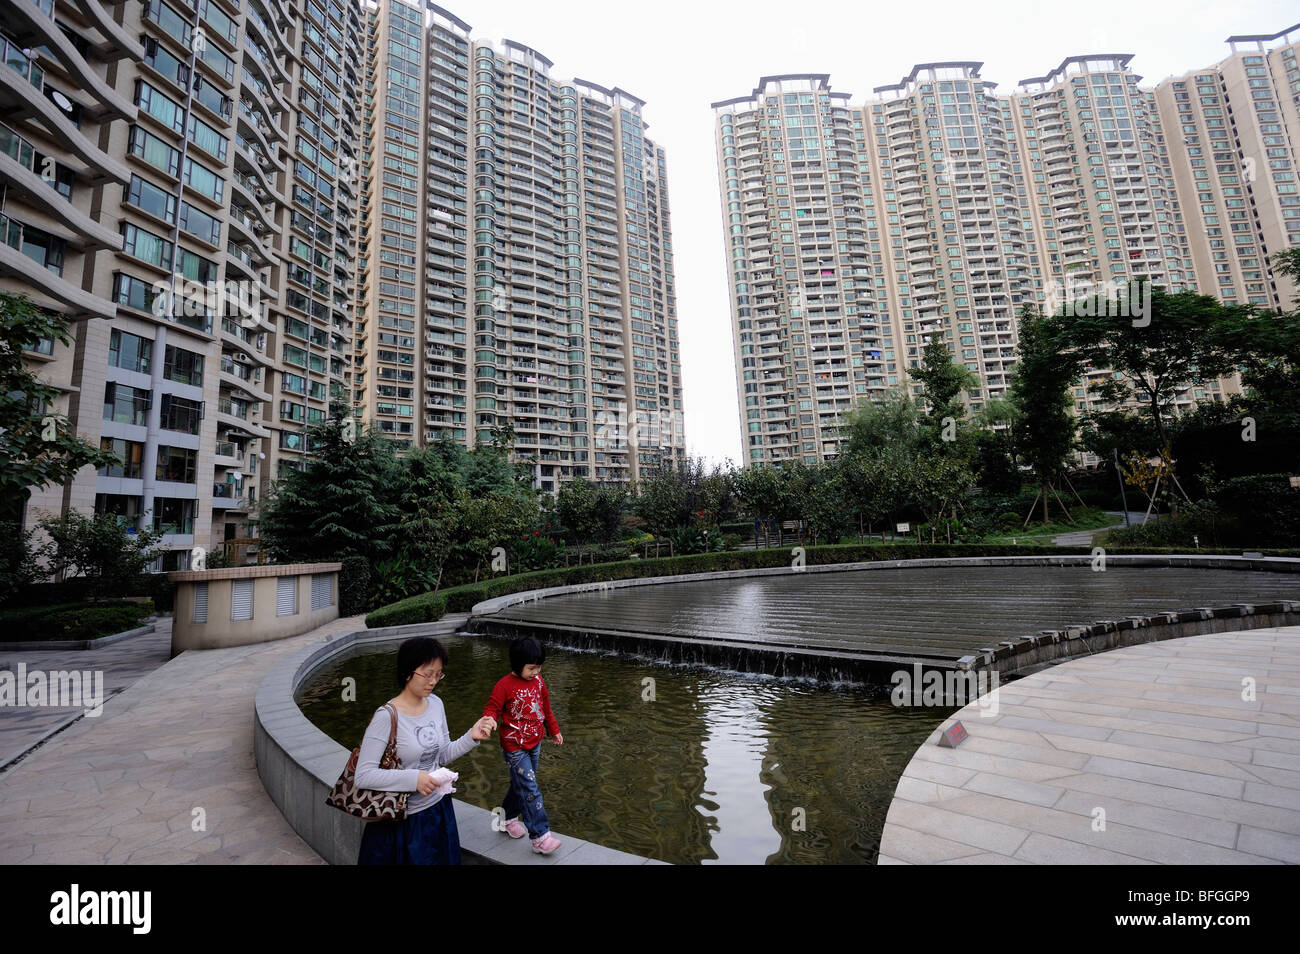 Luxurious apartments in Shanghai, China. 08-Oct-2009 - Stock Image